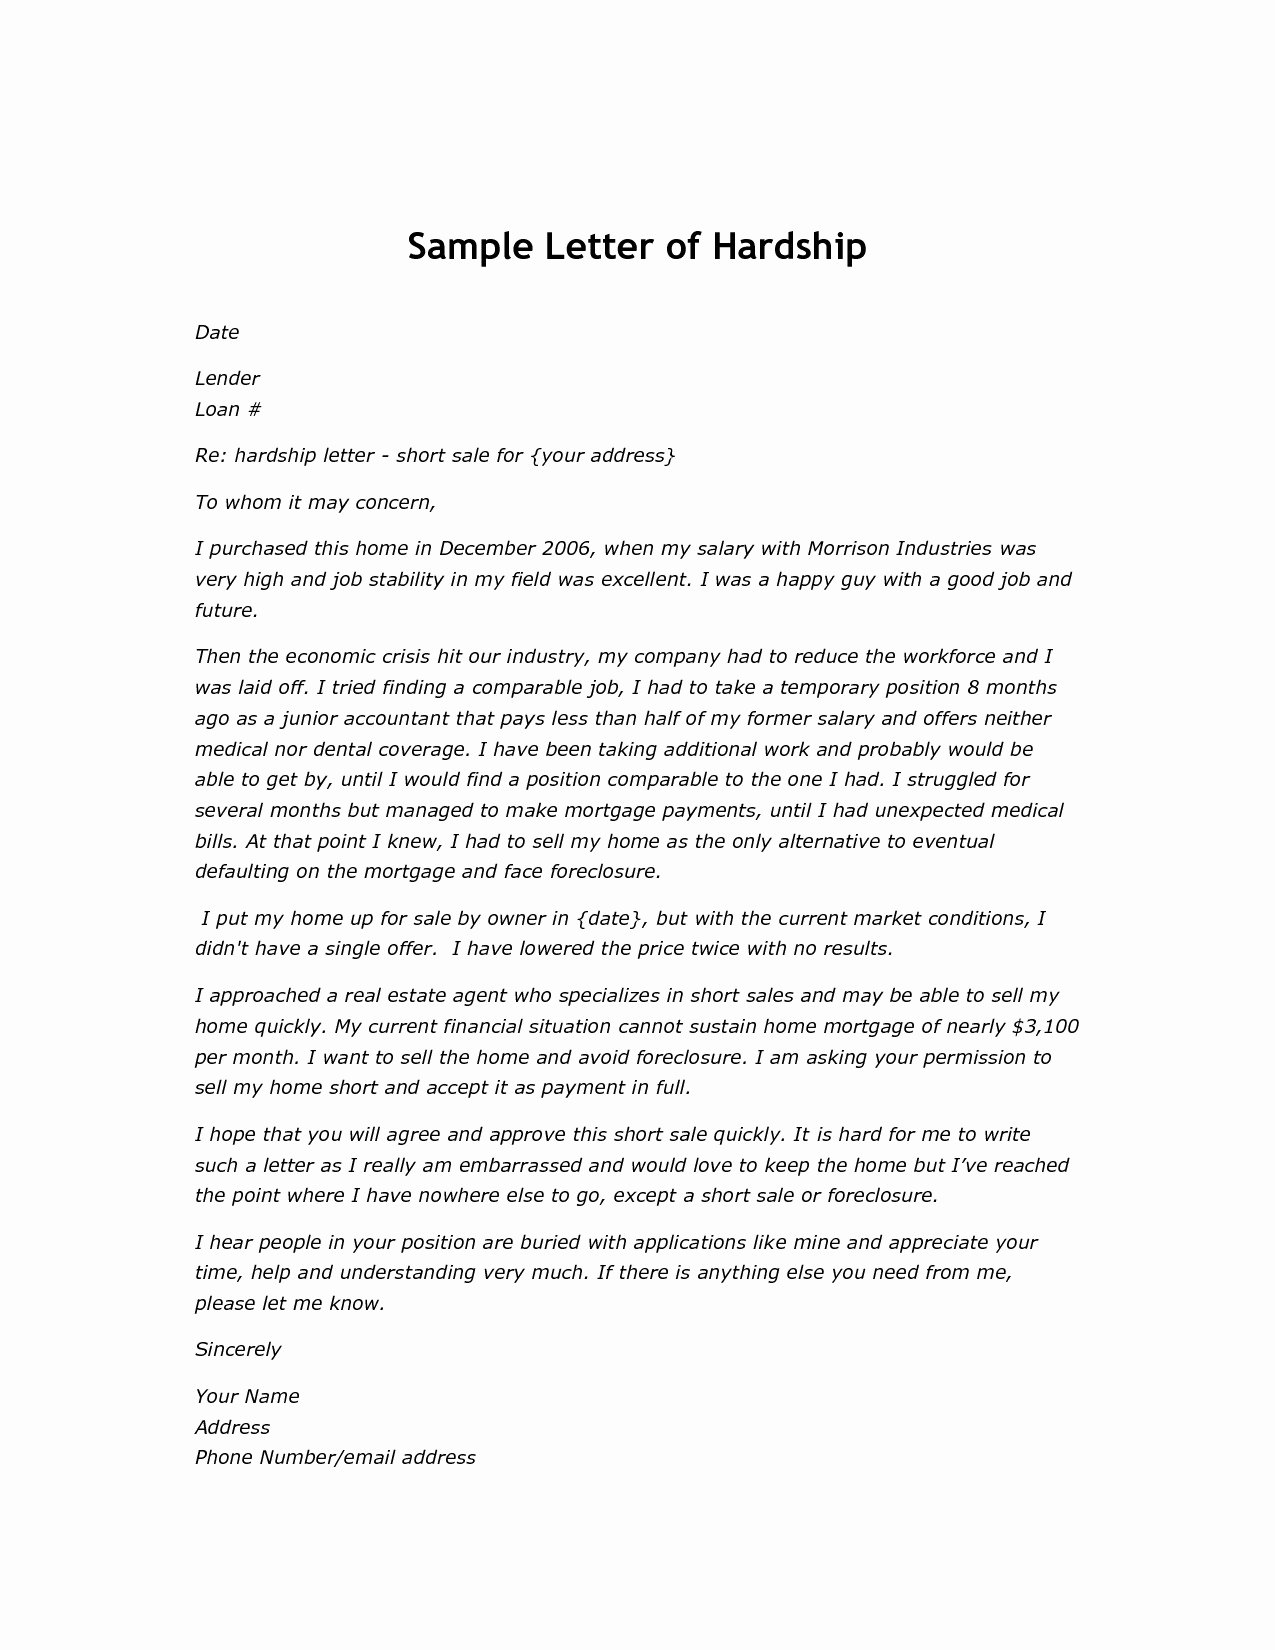 Payment Shock Letter Elegant Mortgage Payment Shock Letter Template Collection